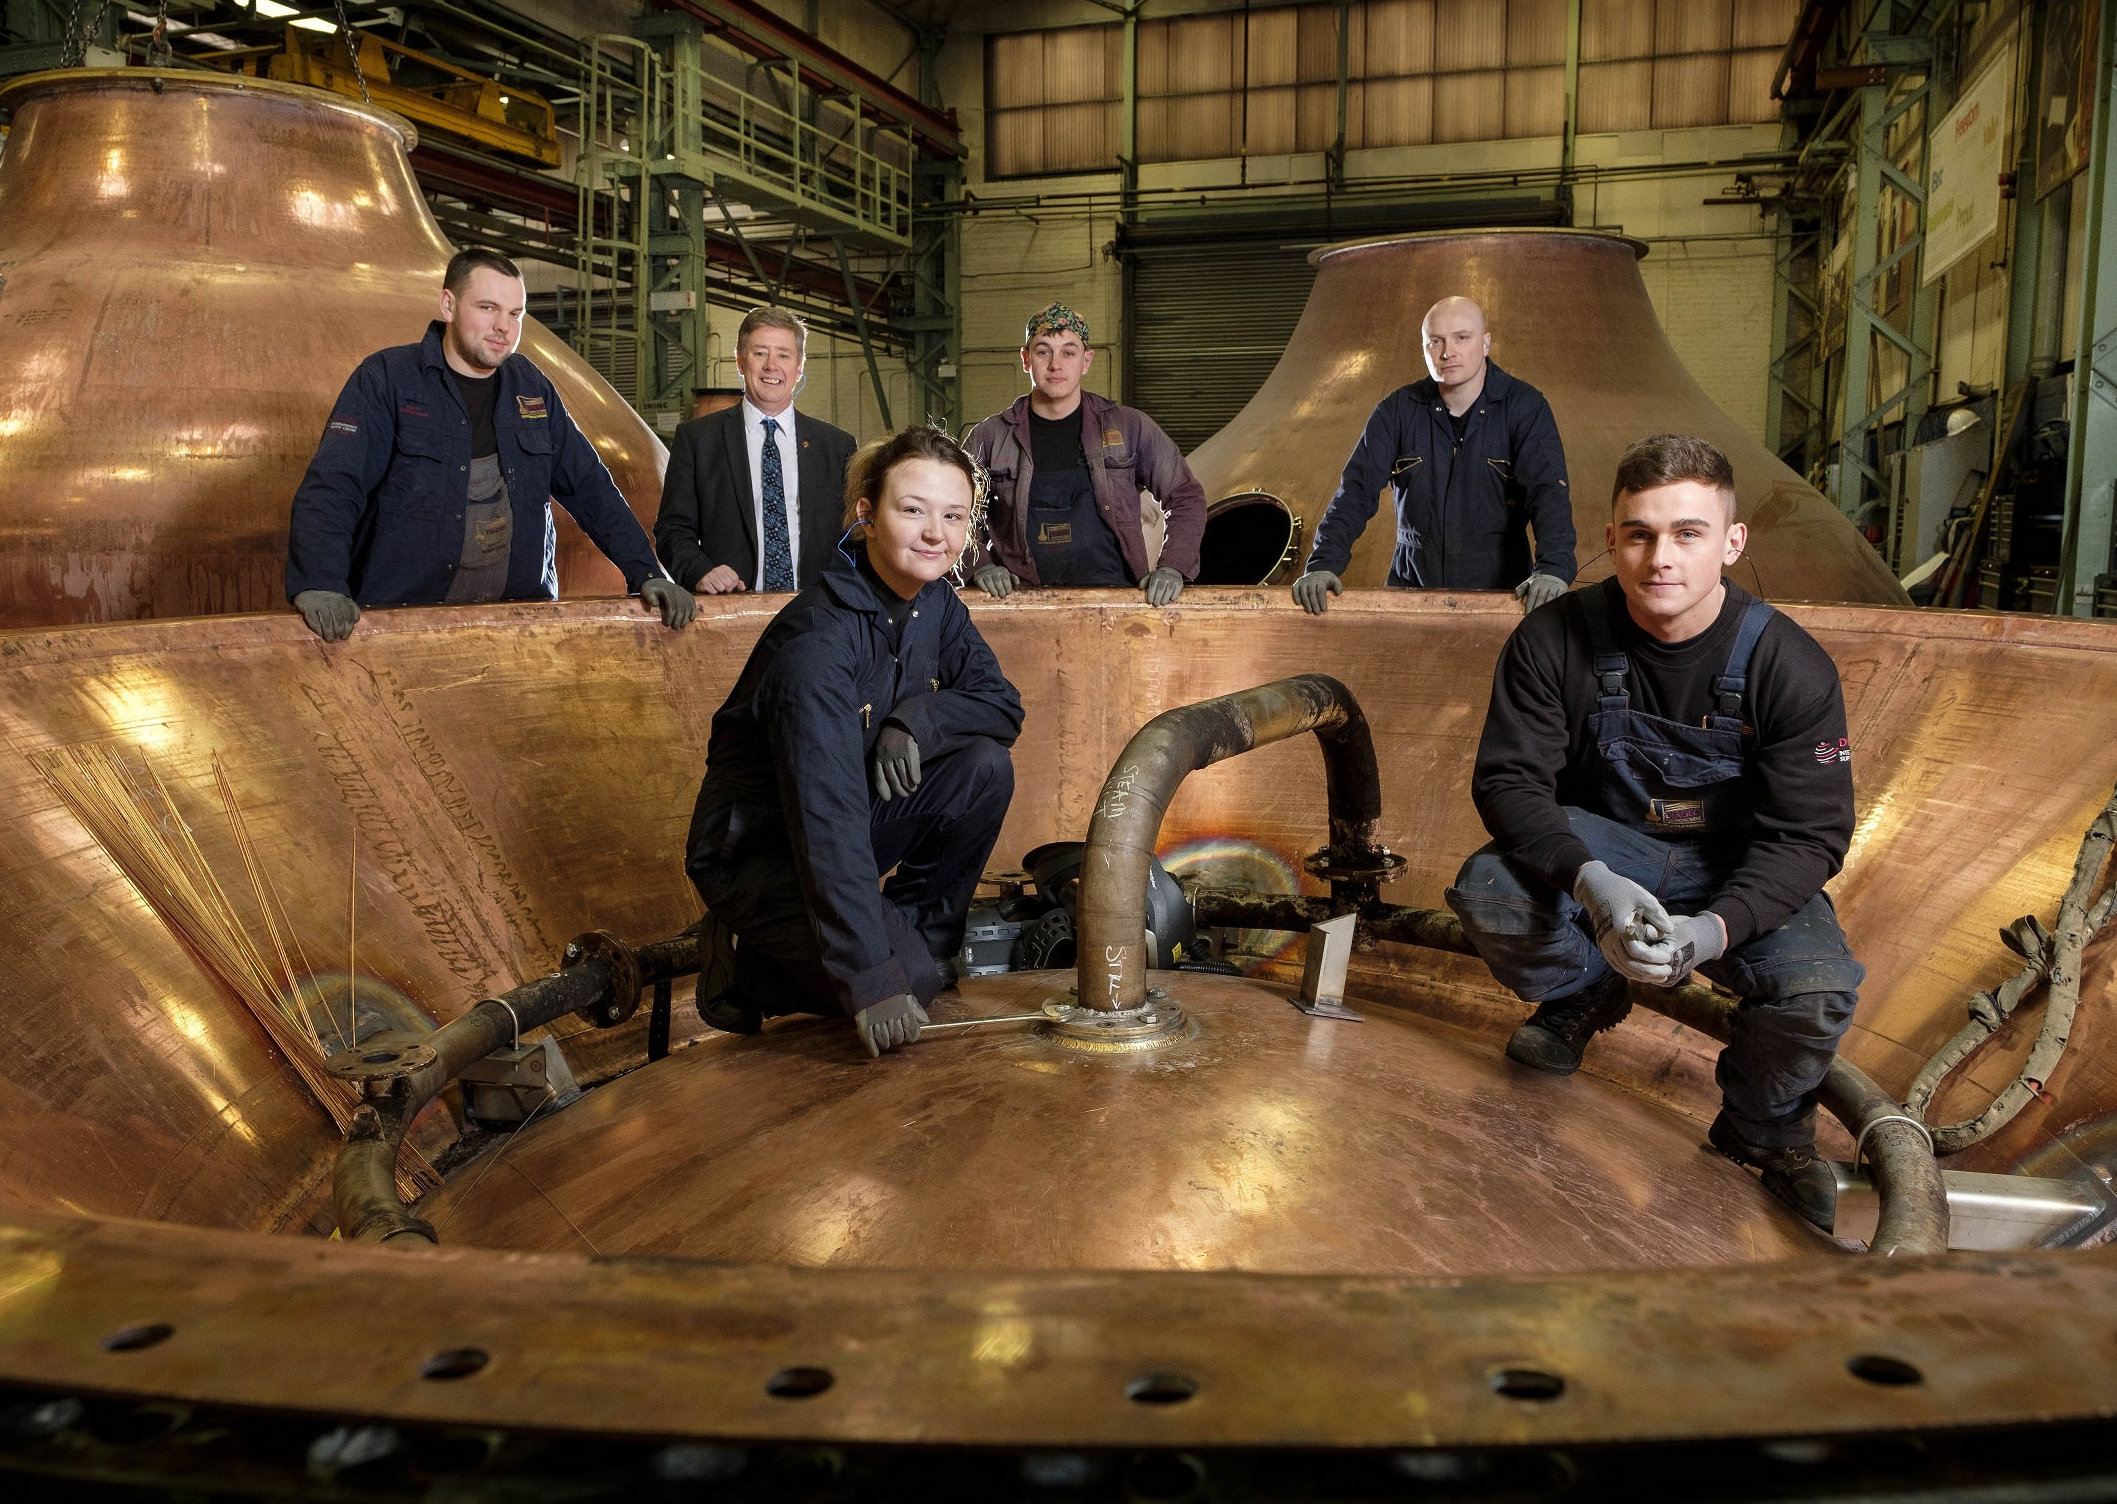 From left: apprentices Scott Roberson, Rebecca Weir, James Watt, Steven Key, Jack Docherty and Keith Brown (second left)